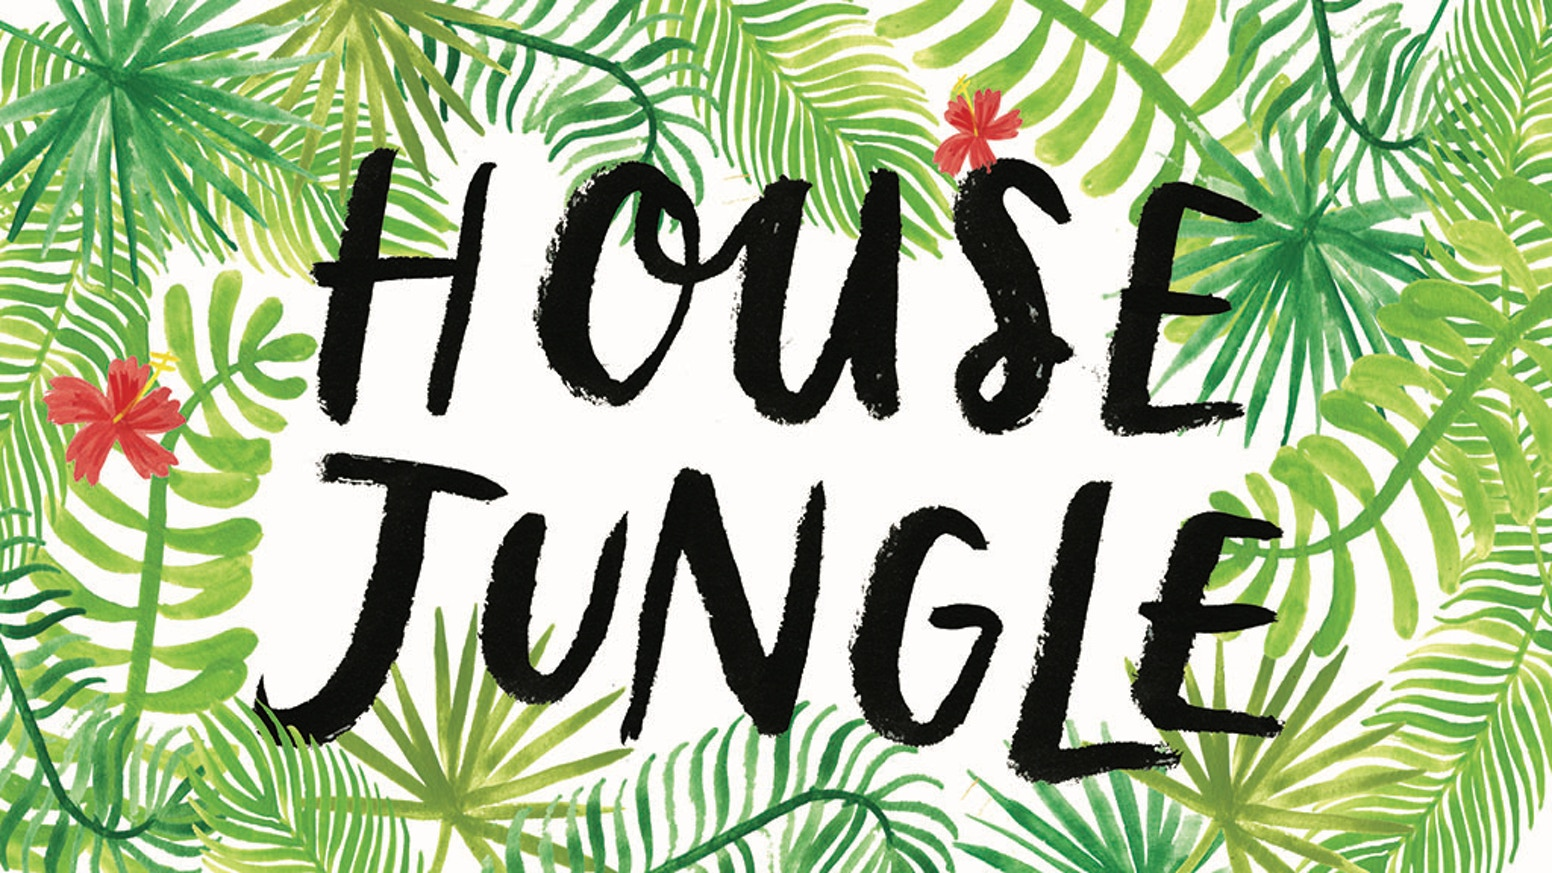 House Jungle: An Illustrated Guide to Becoming a Successful Indoor Gardener! PRE-ORDER NOW ON AMAZON!